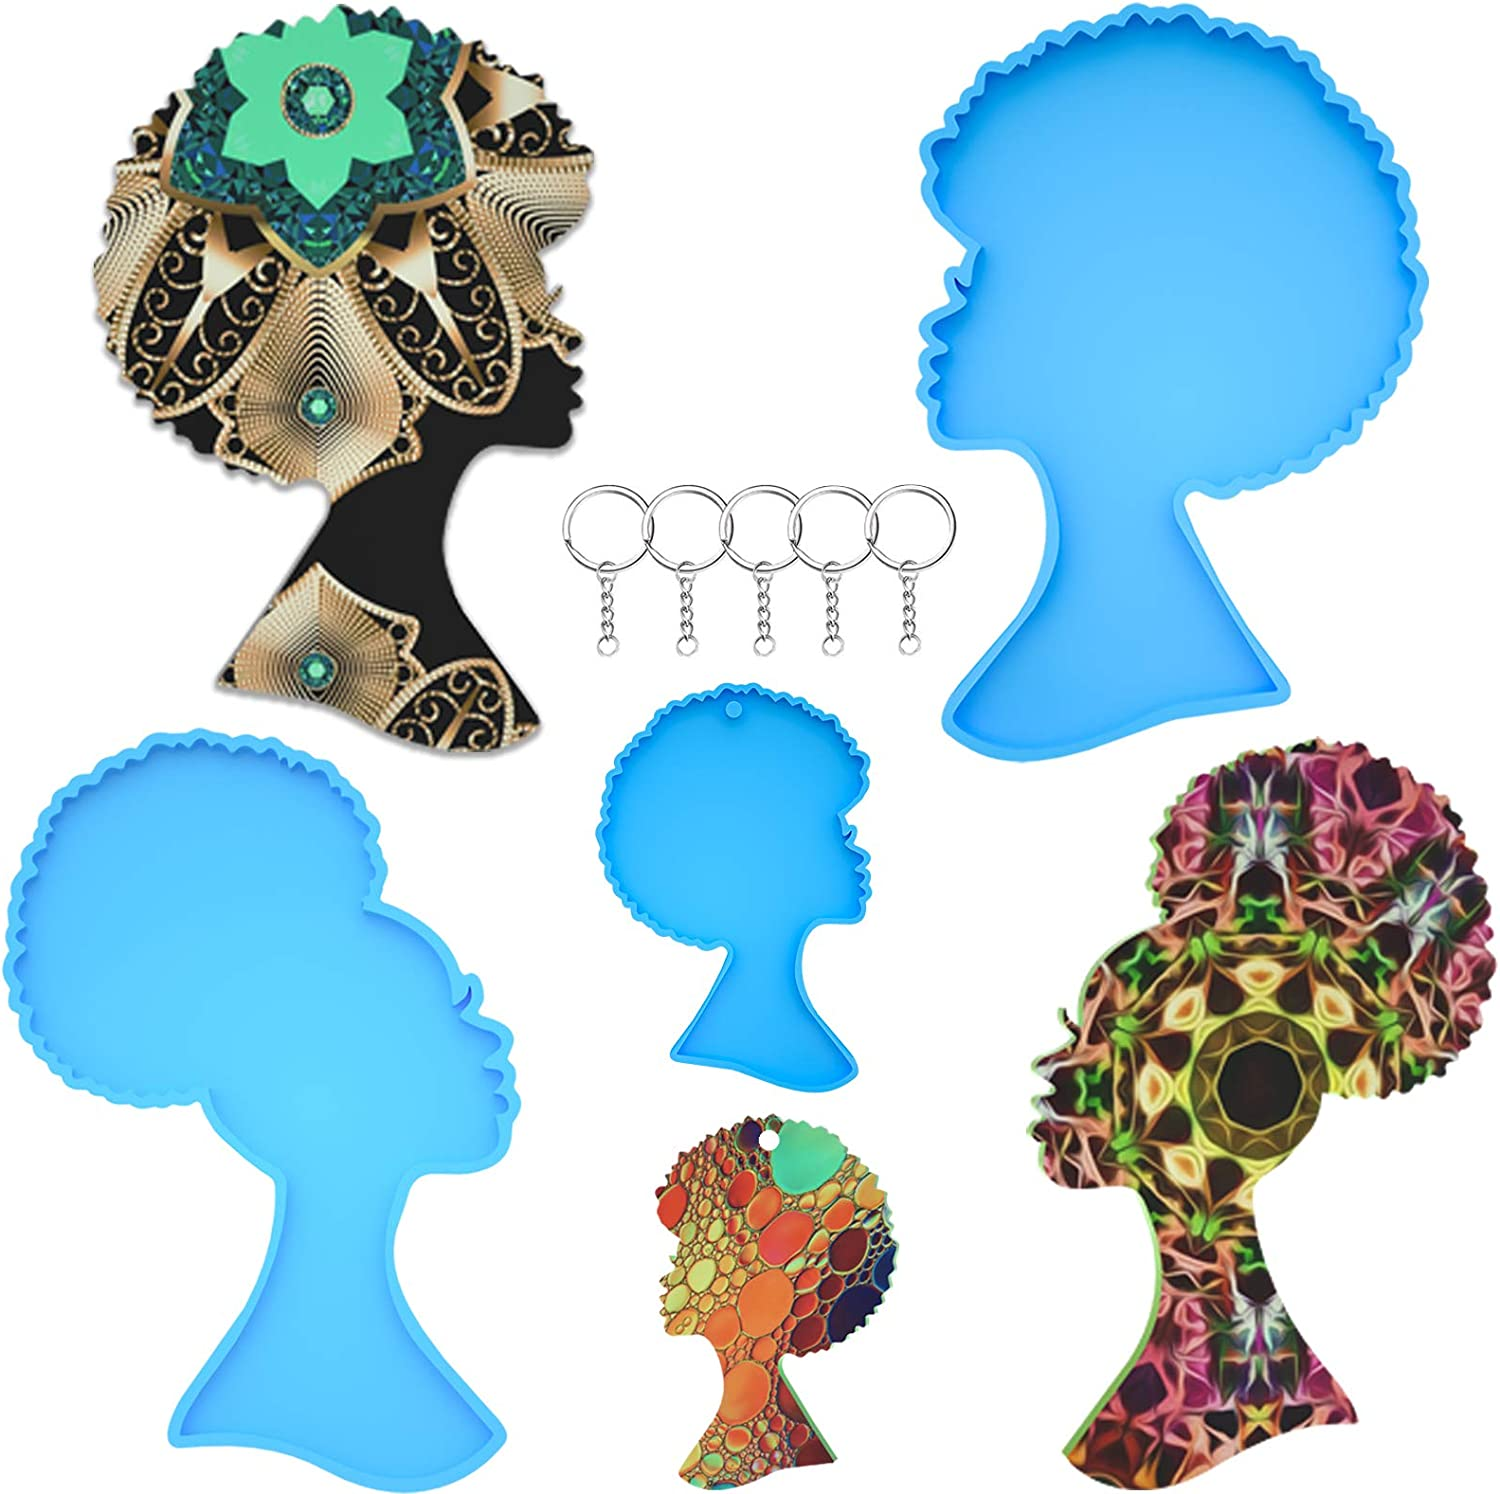 famous Anasido 3Pcs Resin Very popular Molds Silicone Bundle Woman Head Kit Coaster